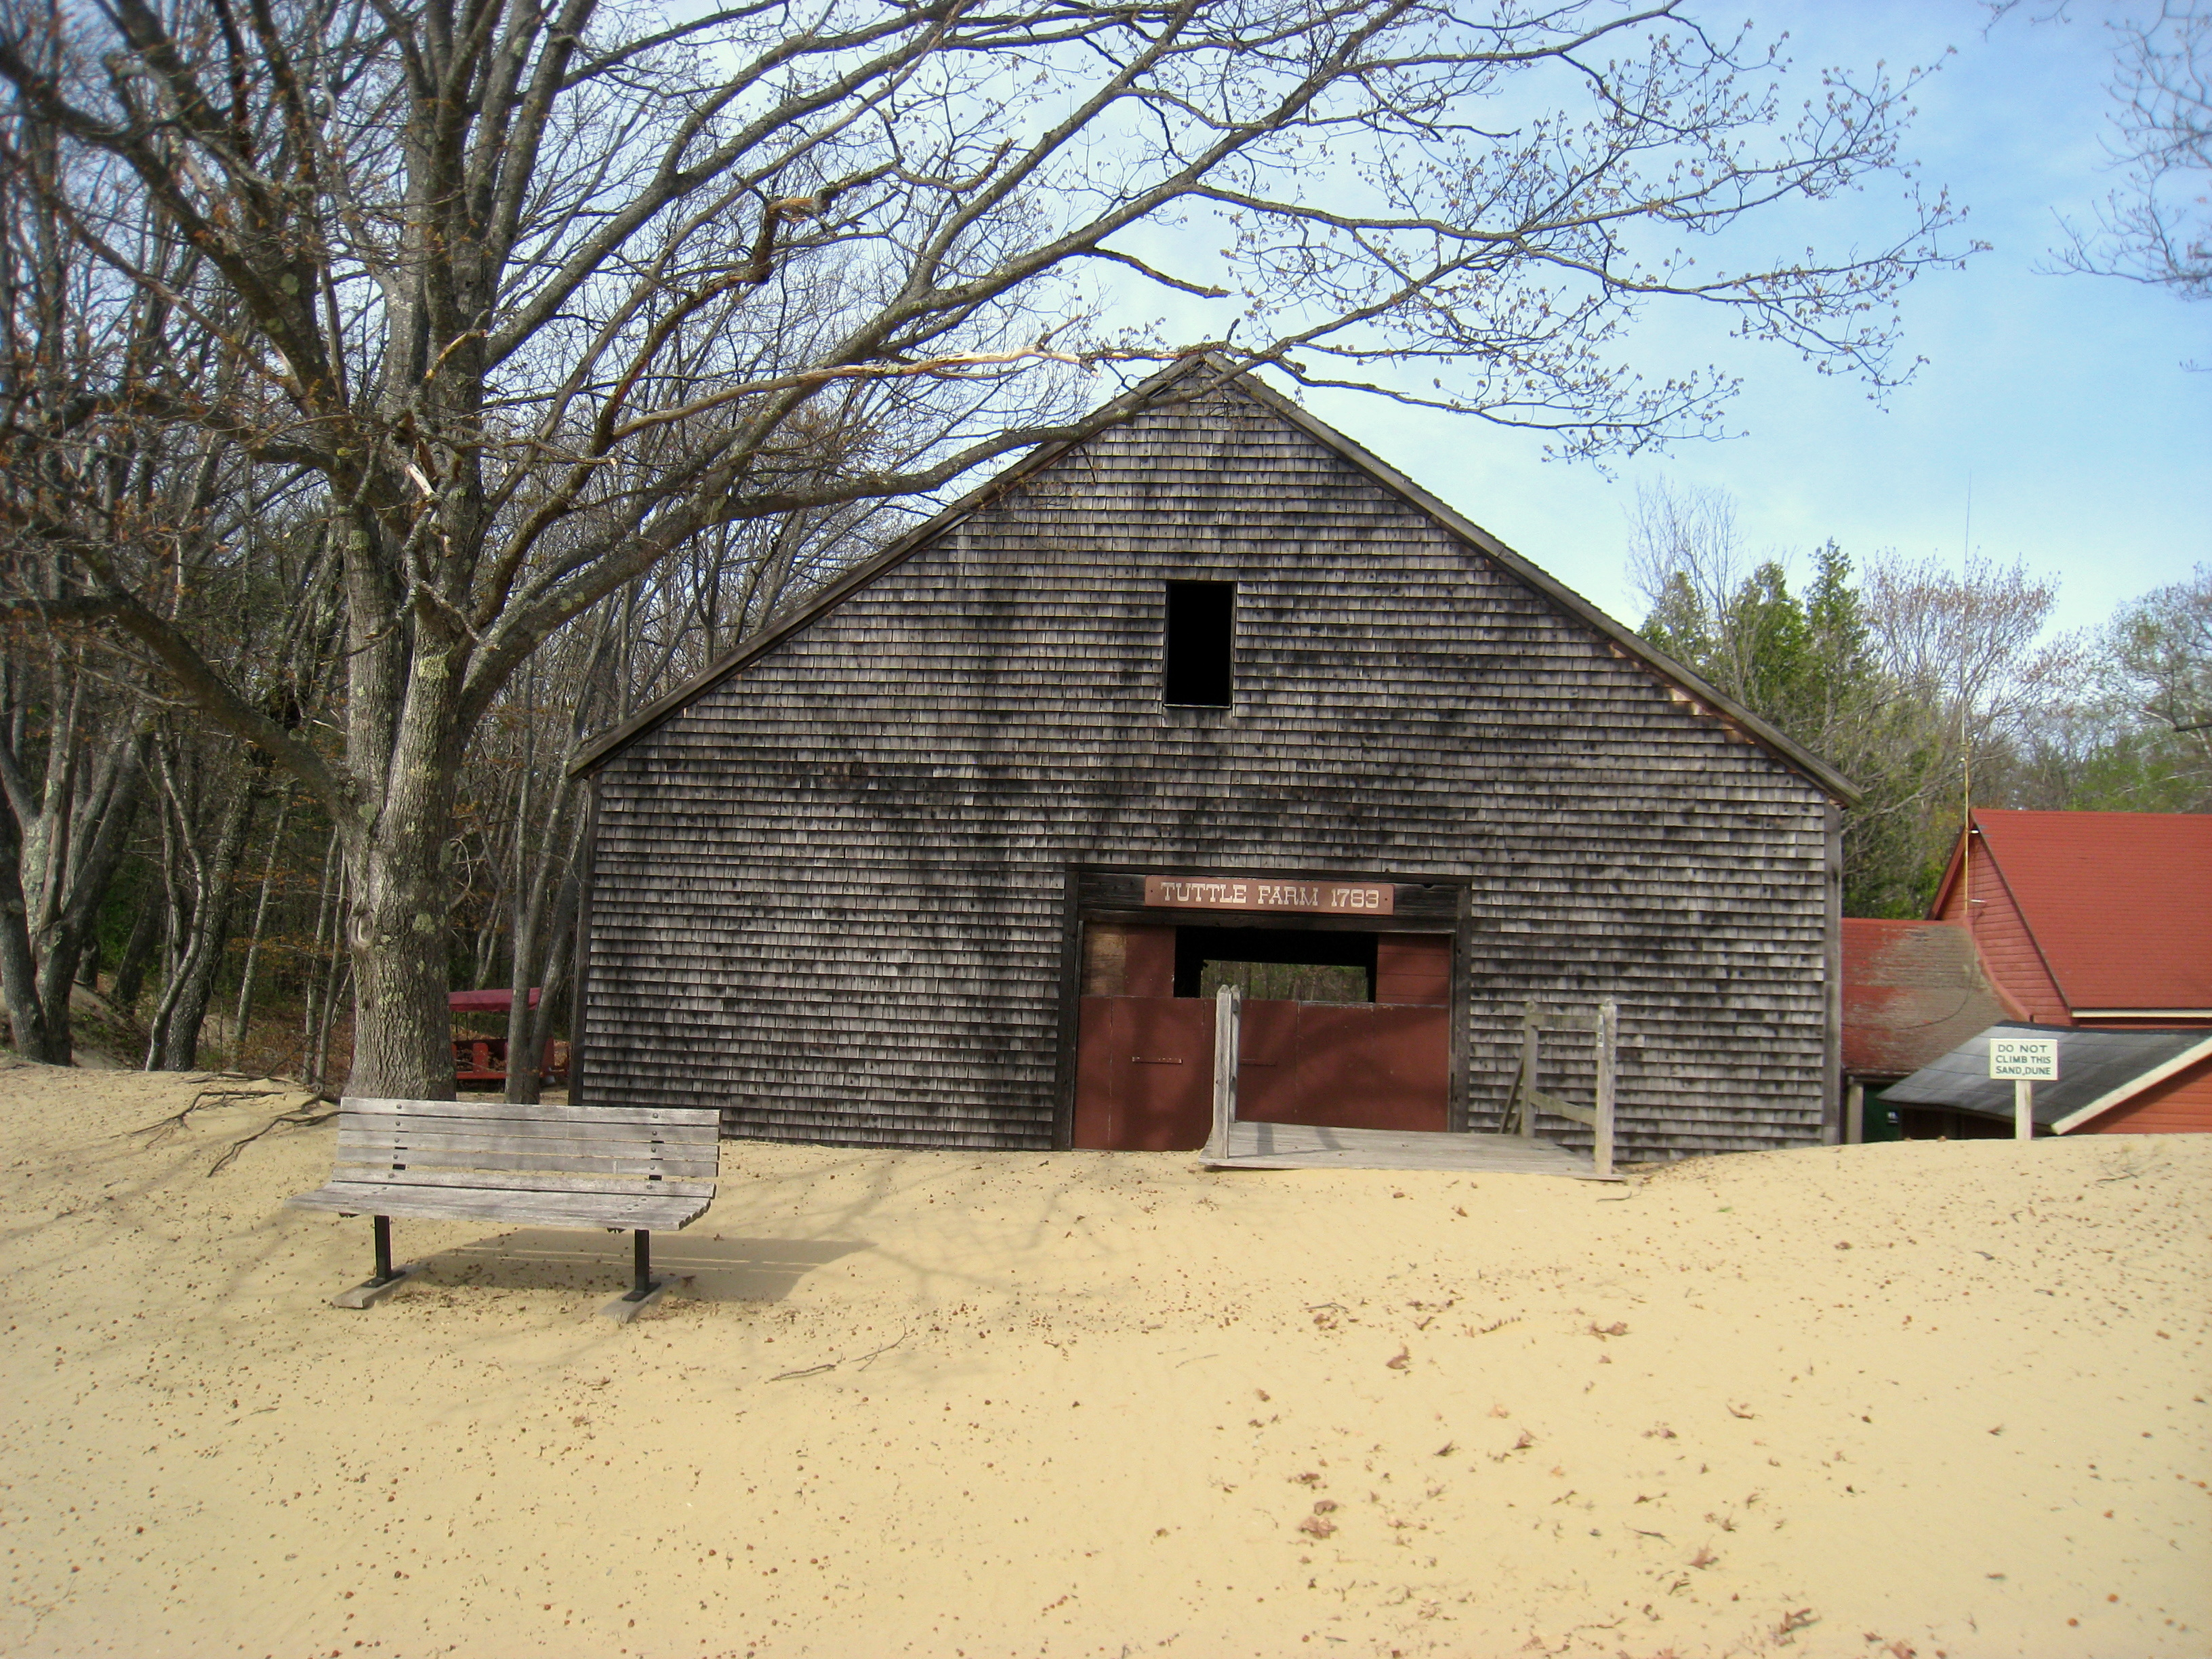 u201cThis barn Why is there a